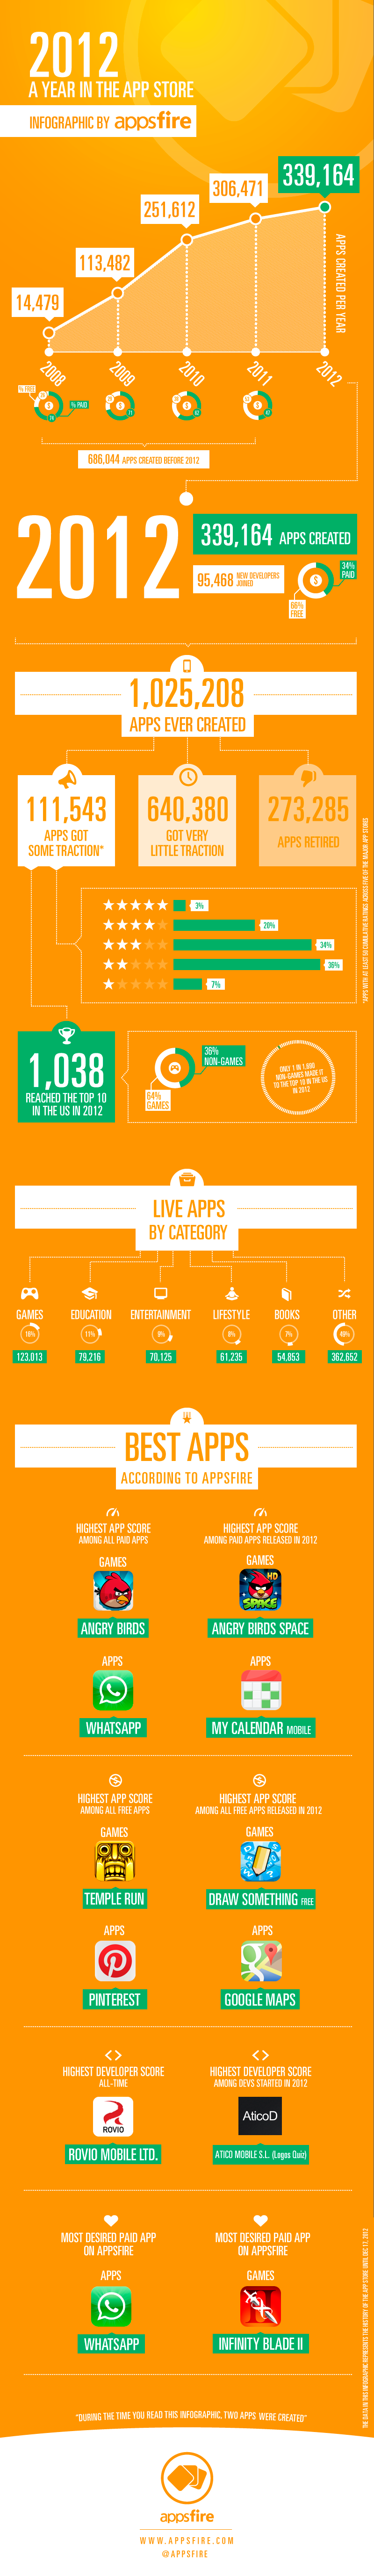 Appsfire-2012-A-Year-in-the-App-Store